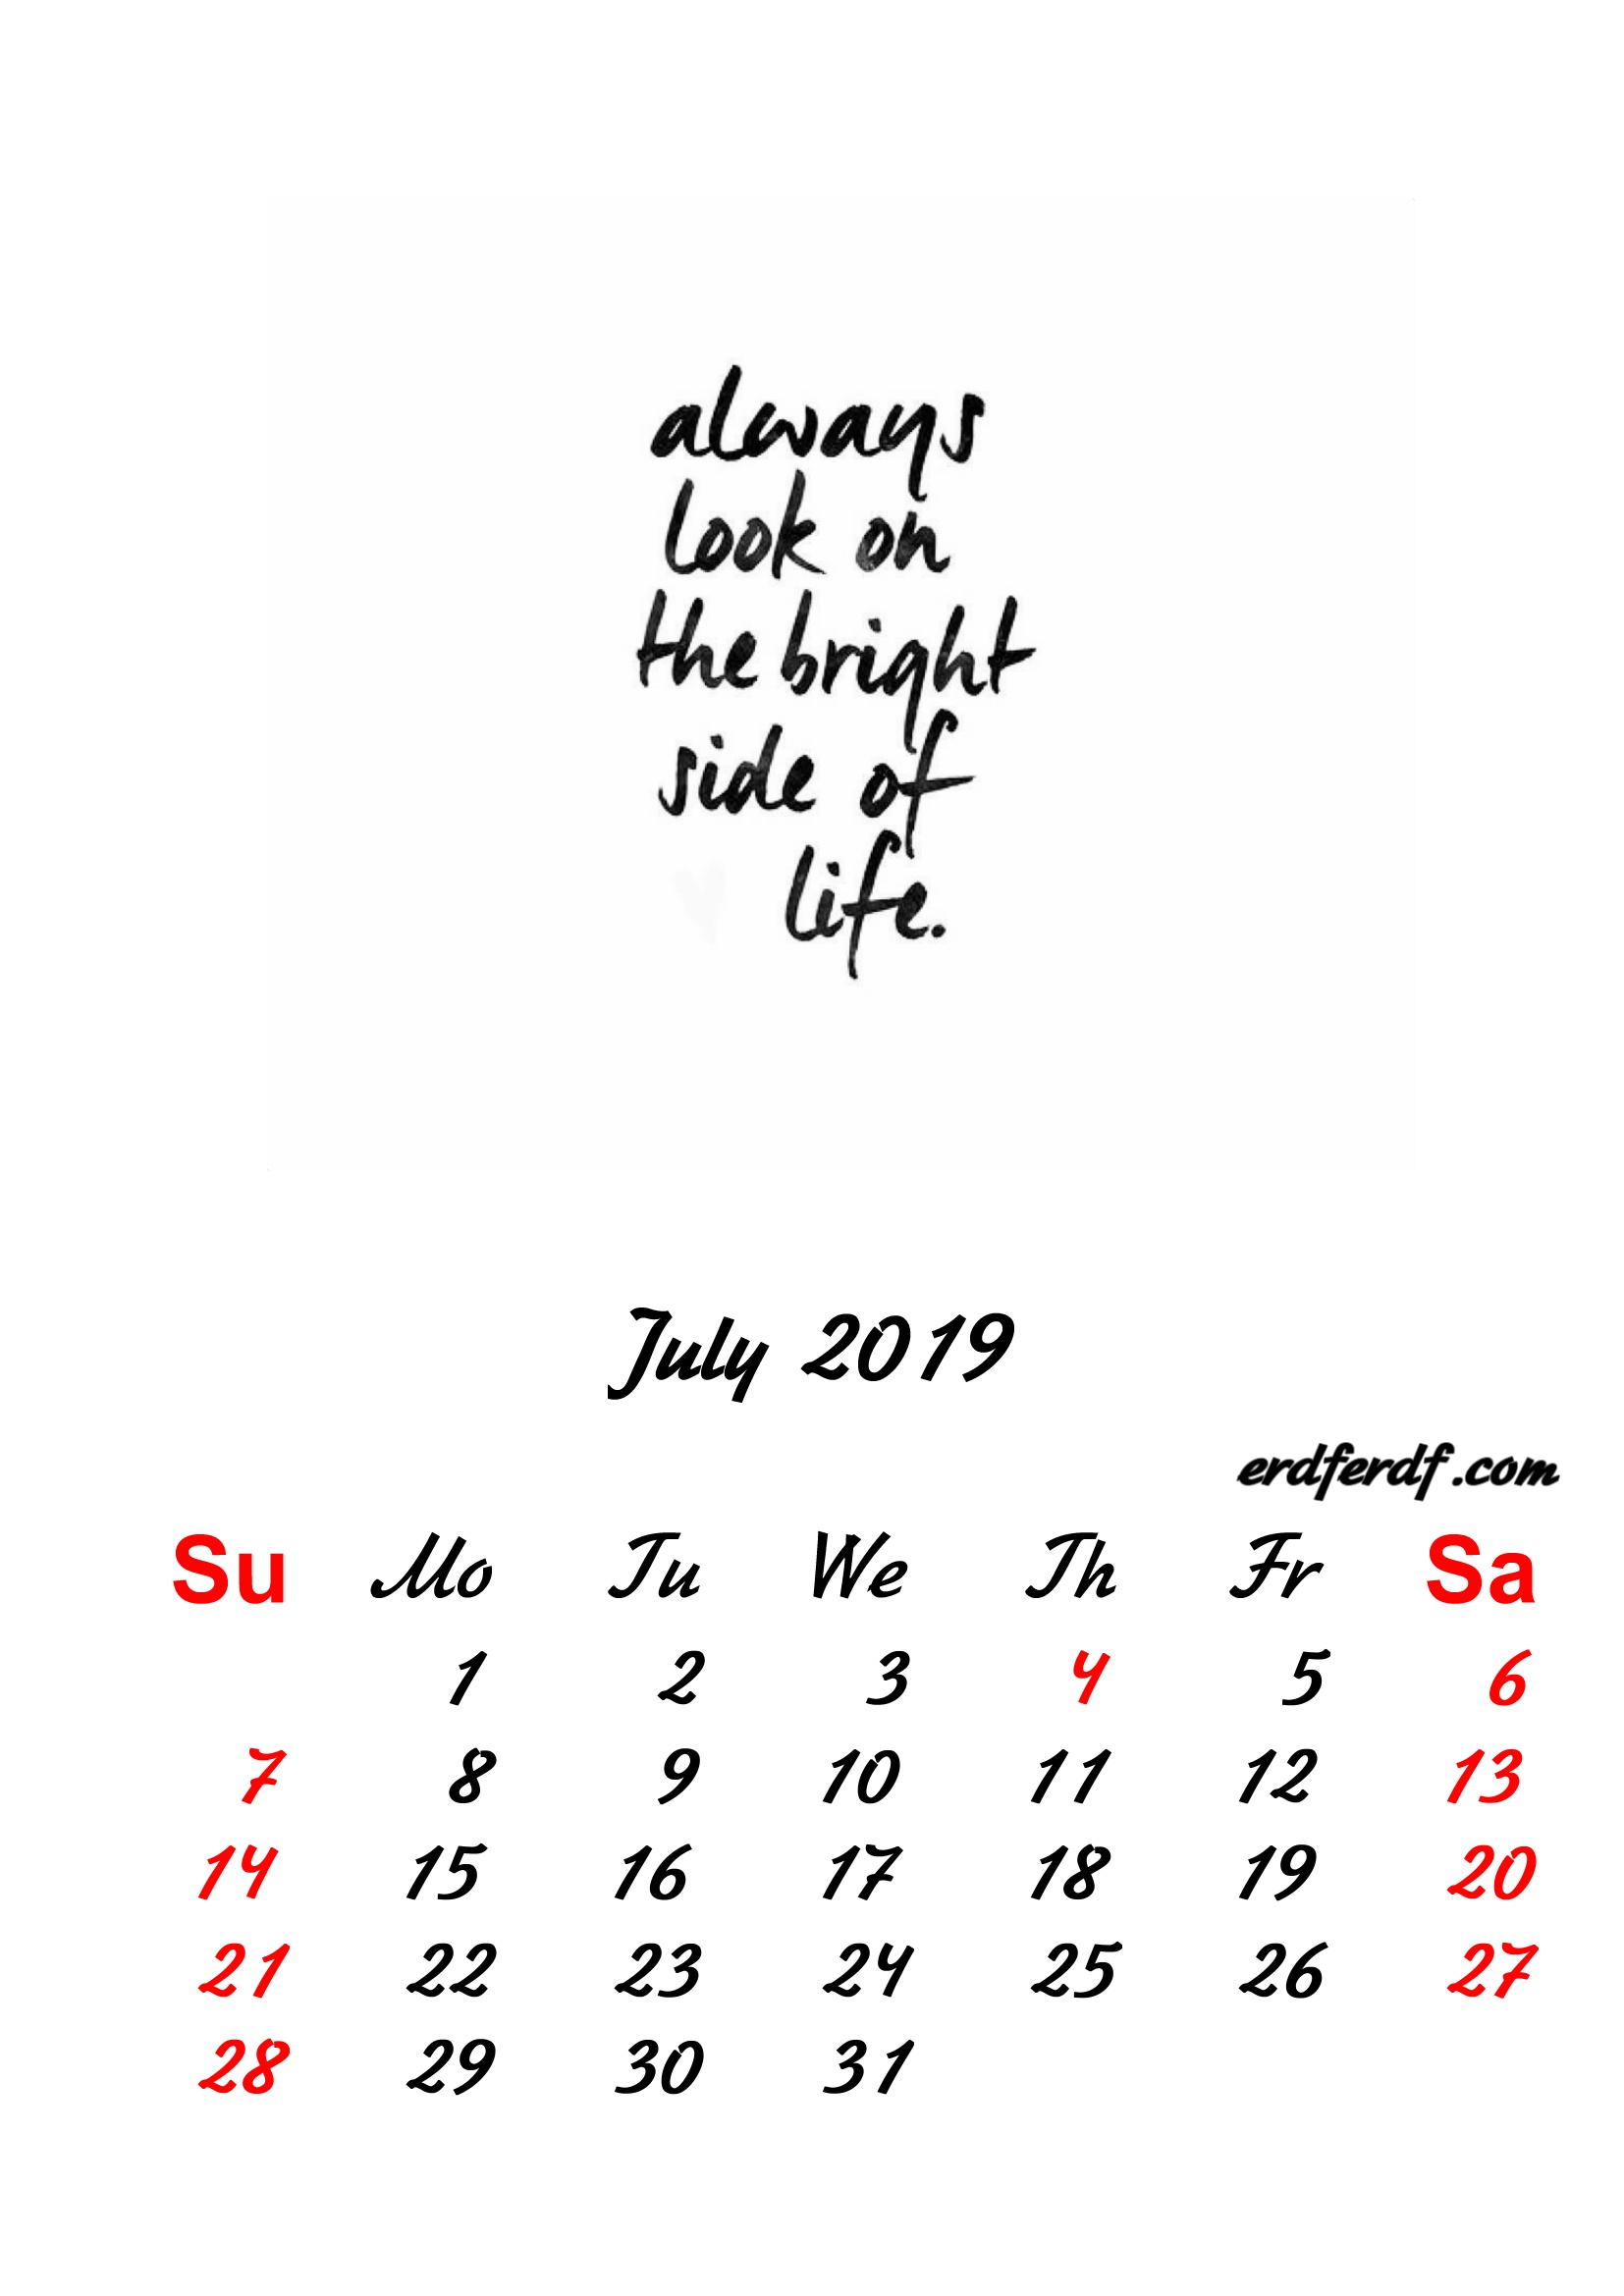 7 July 2019 Inspirational Quotes Pprintable Calendar